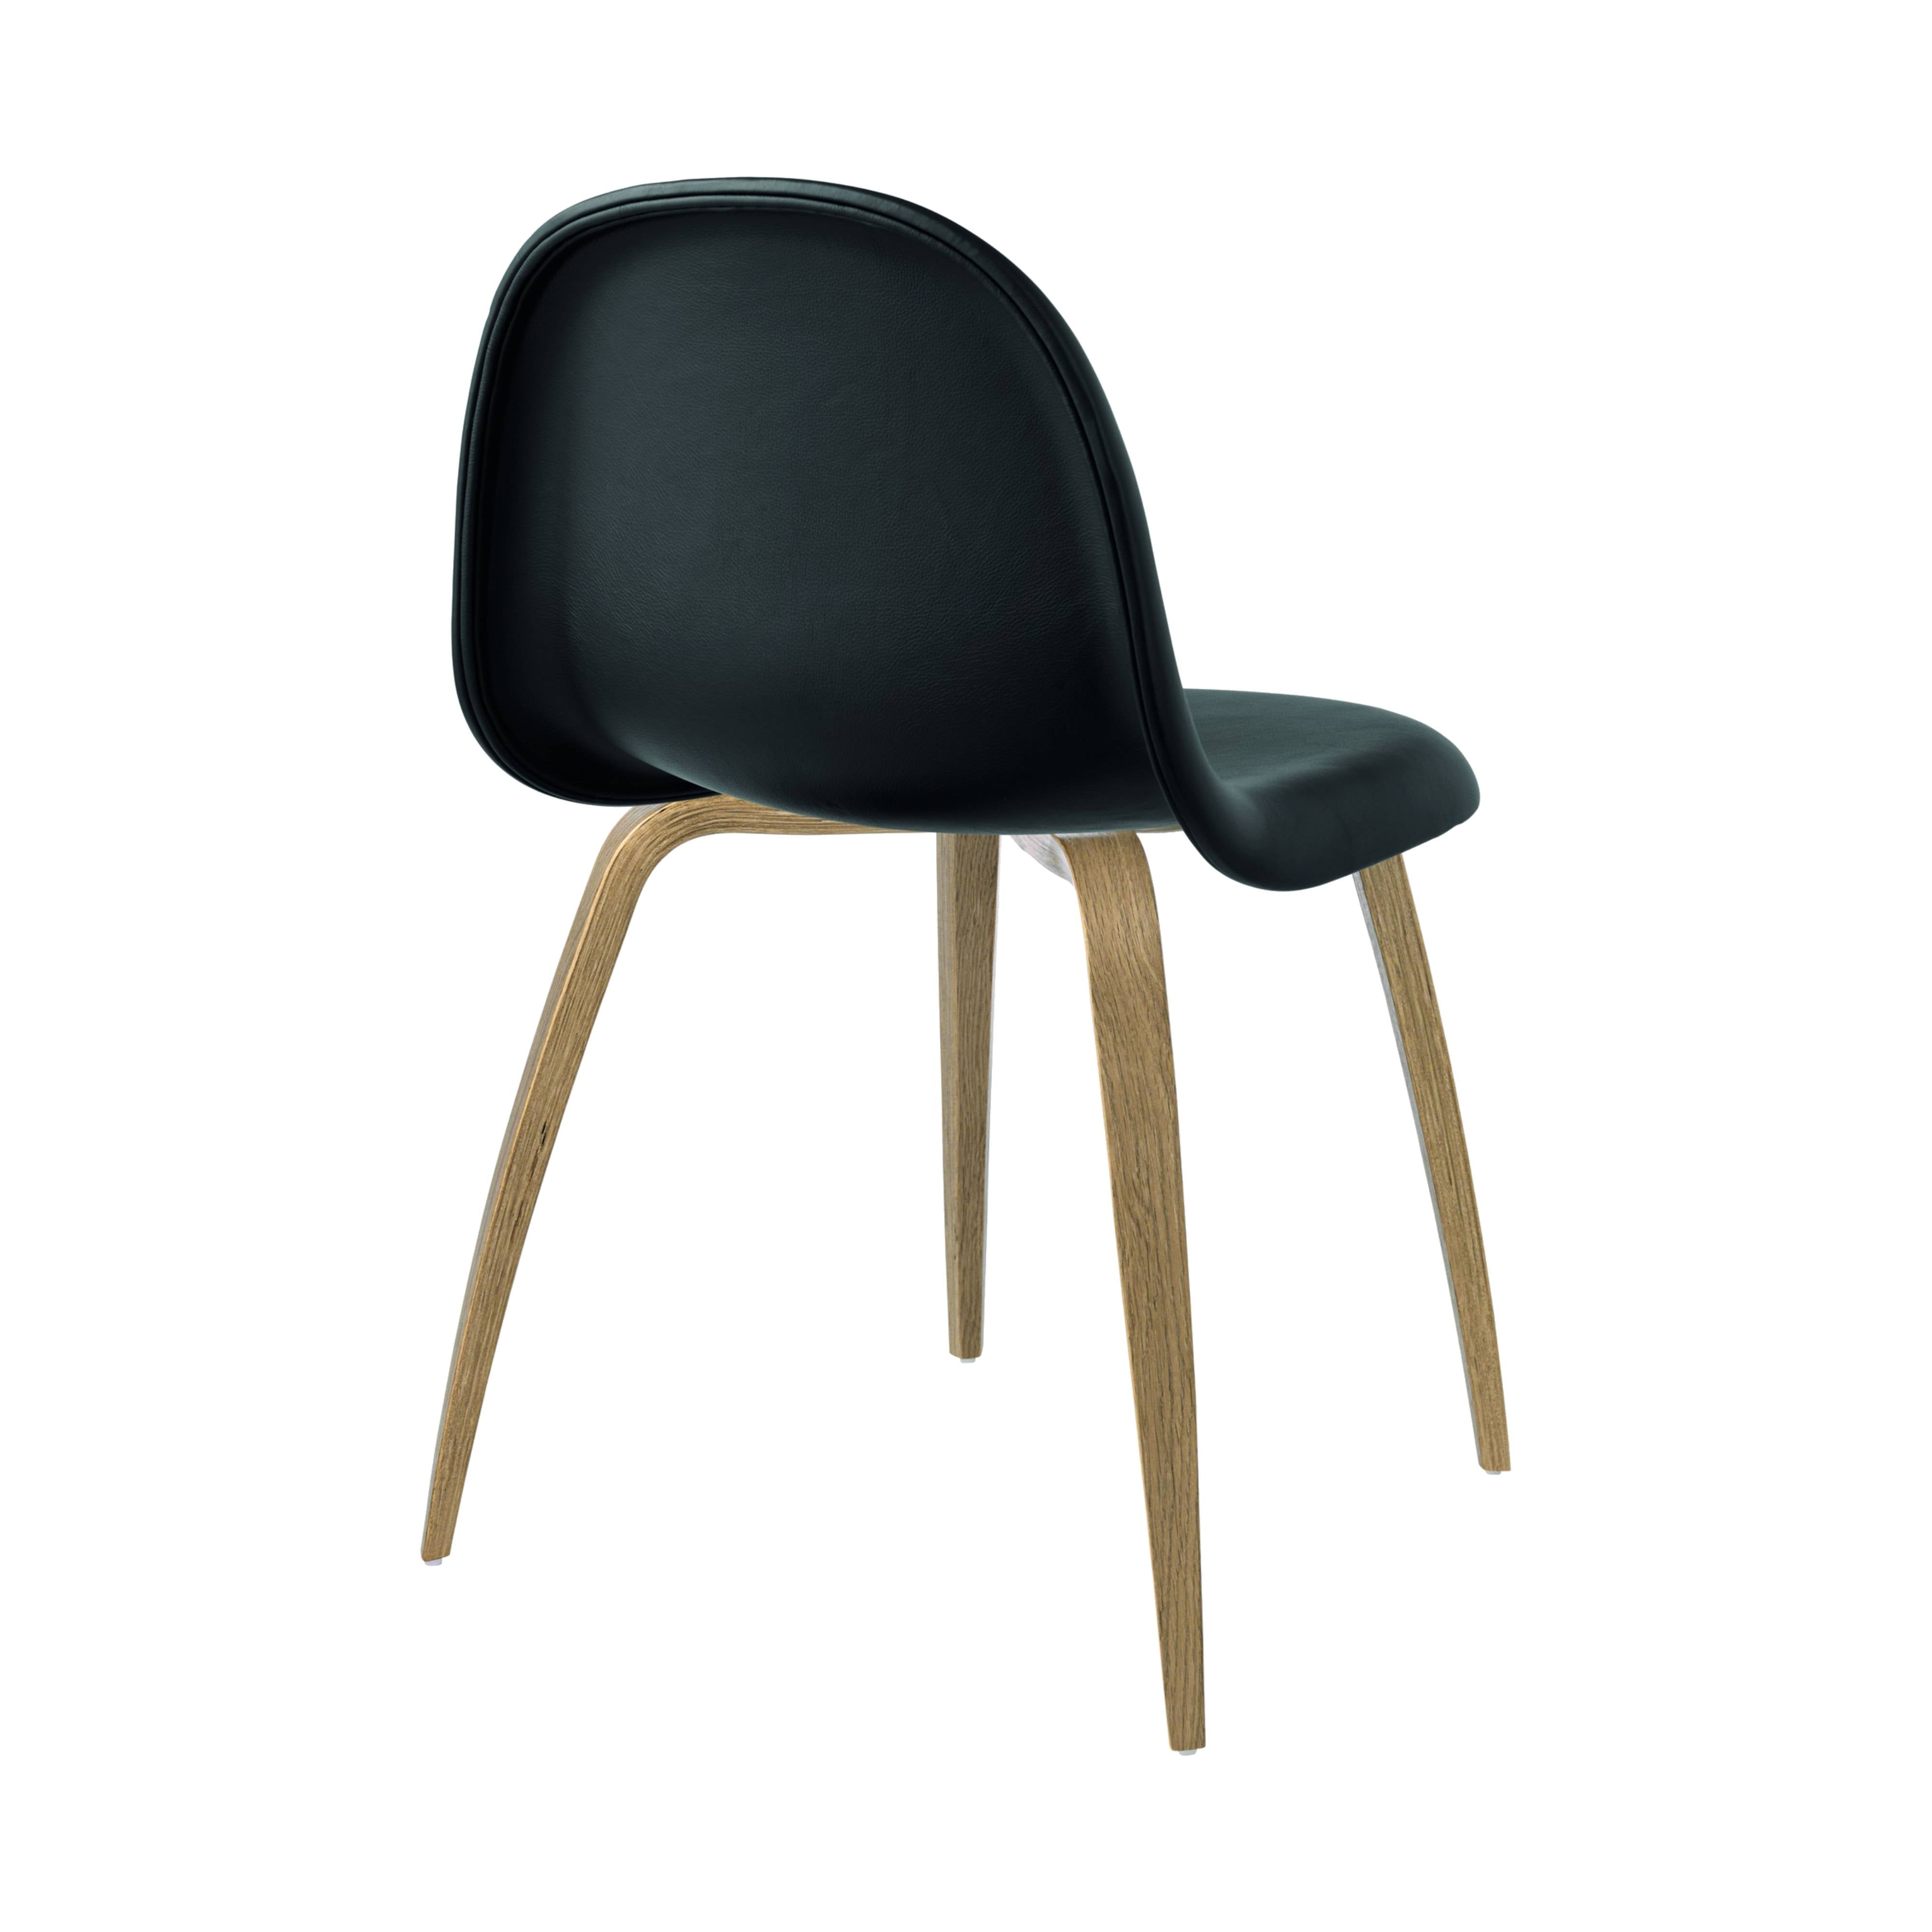 3D Dining Chair: Wood Base + Full Upholstery: Oak